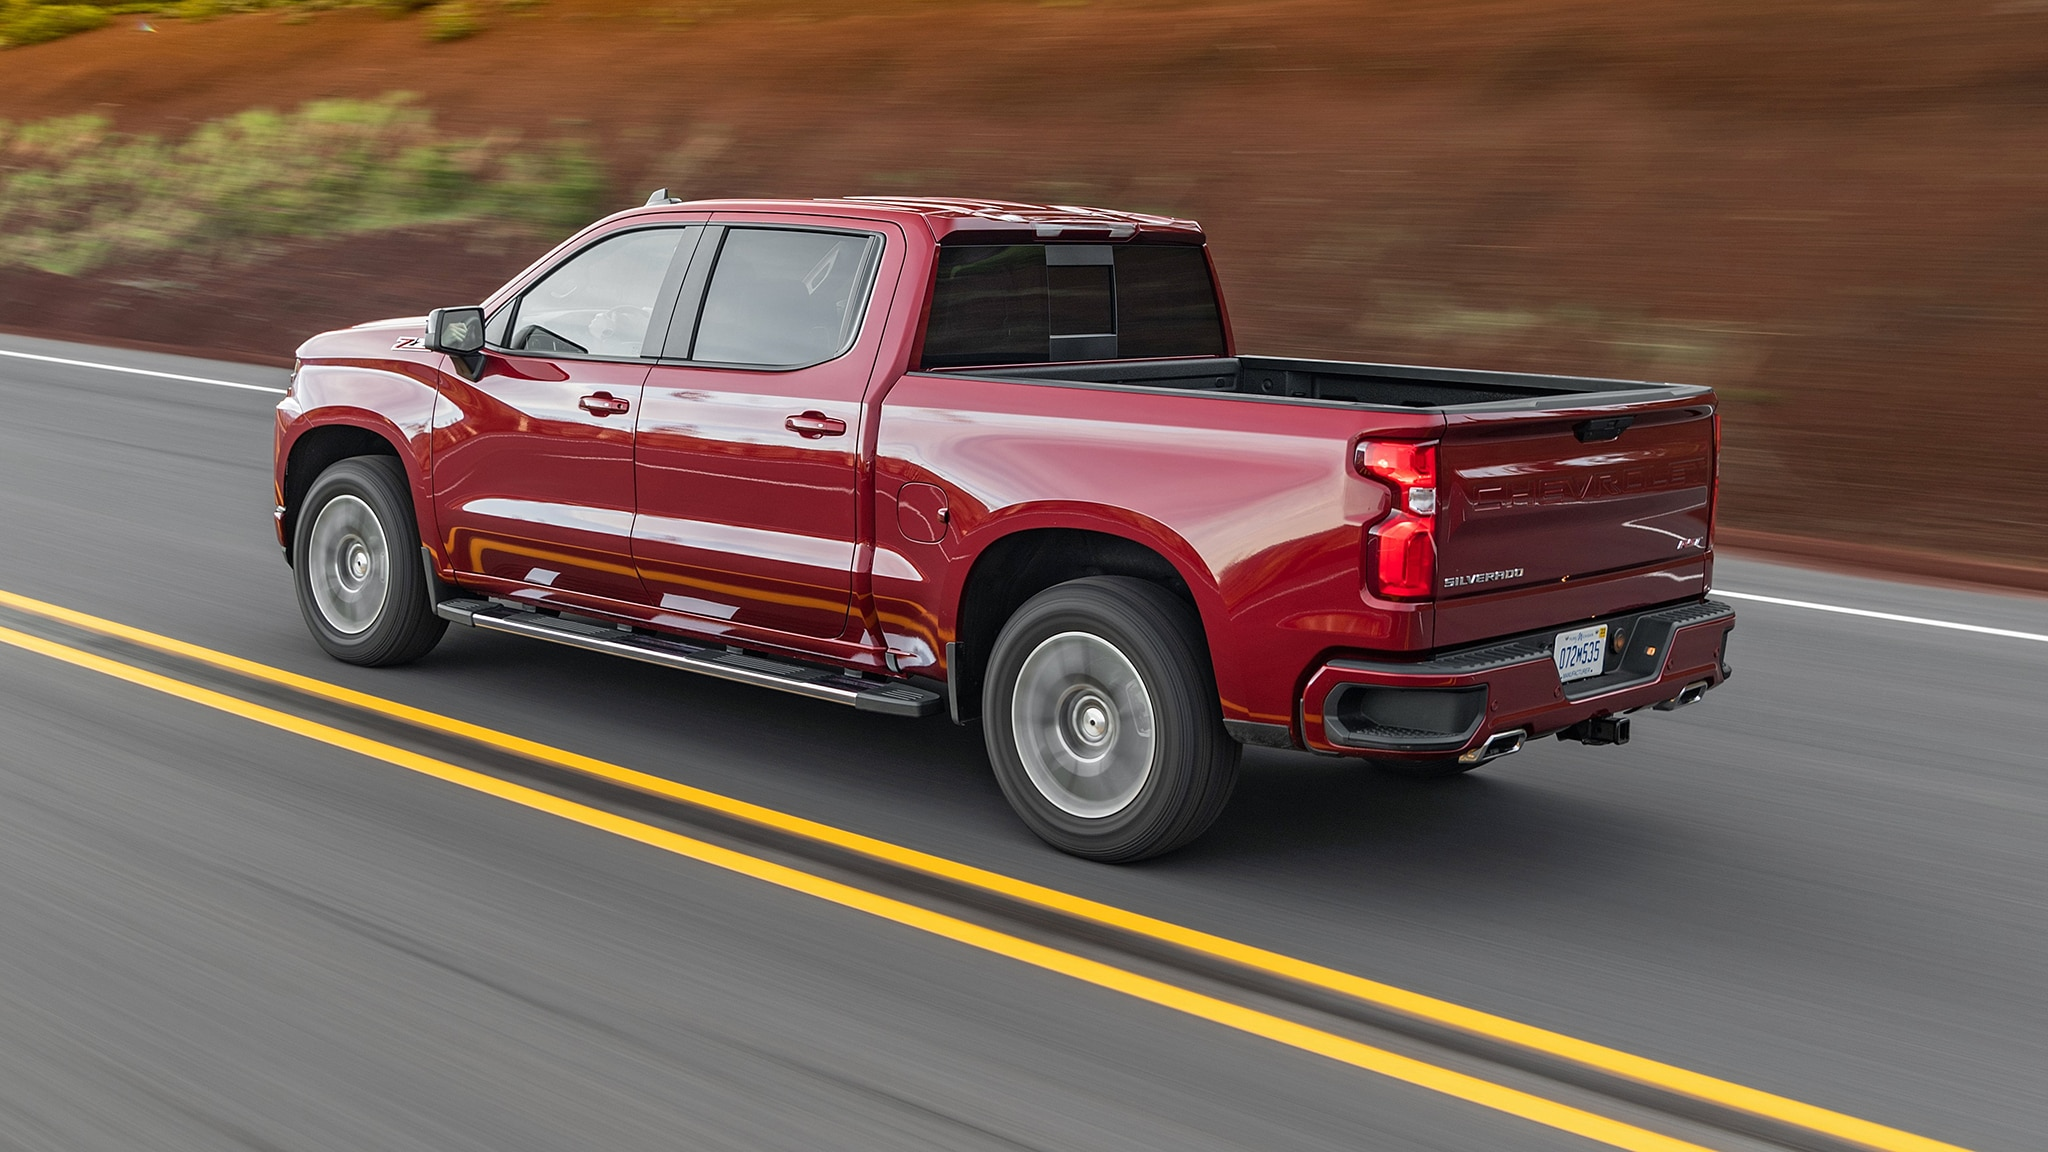 Silverado 1500 Diesel >> 2020 Chevrolet Silverado 1500 Diesel First Drive Review Automobile